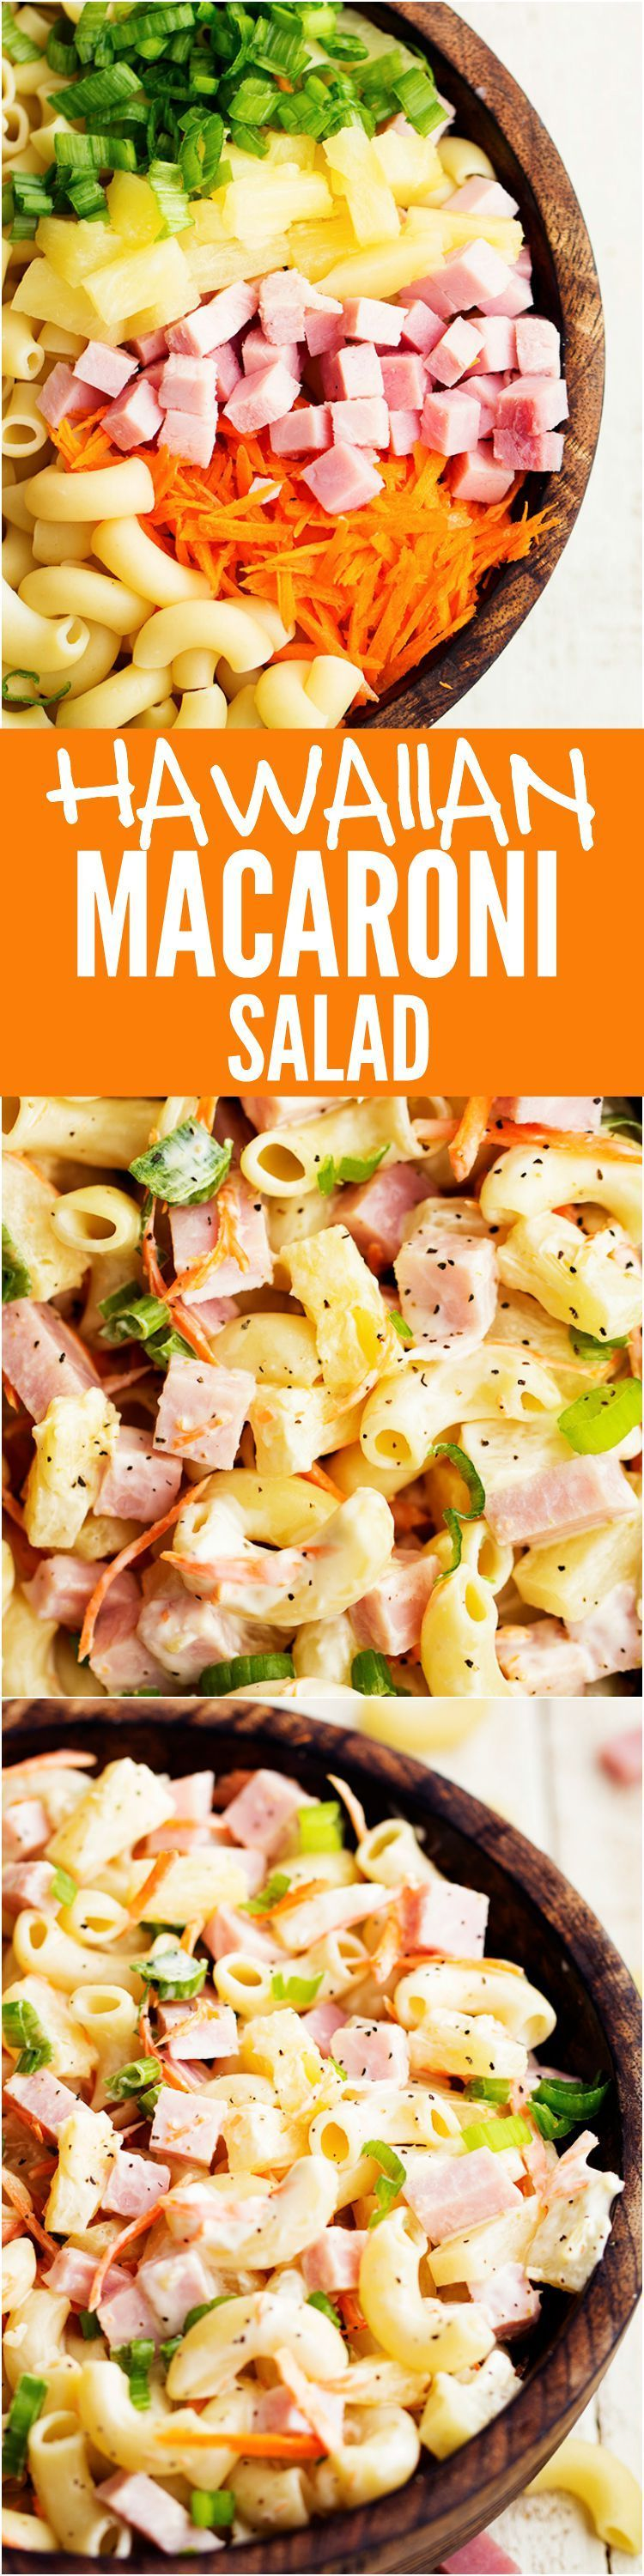 Macaroni Salad This Hawaiian Pasta salad has ham and pineapple hidden inside and the pineapple dressing is the BEST part!This Hawaiian Pasta salad has ham and pineapple hidden inside and the pineapple dressing is the BEST part!